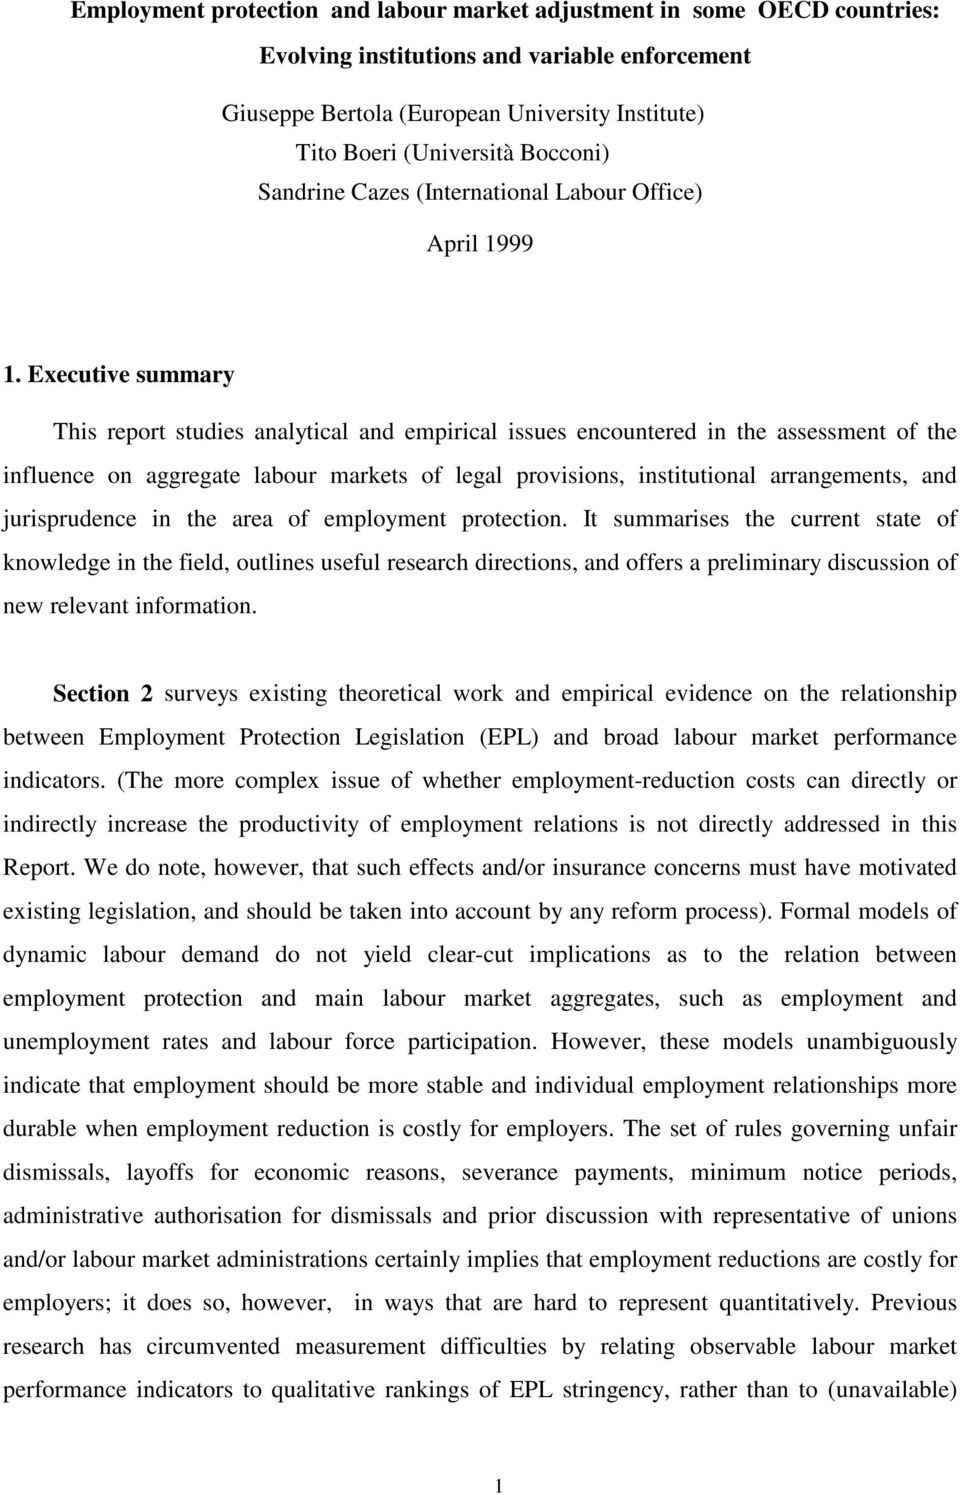 Executive summary This report studies analytical and empirical issues encountered in the assessment of the influence on aggregate labour markets of legal provisions, institutional arrangements, and